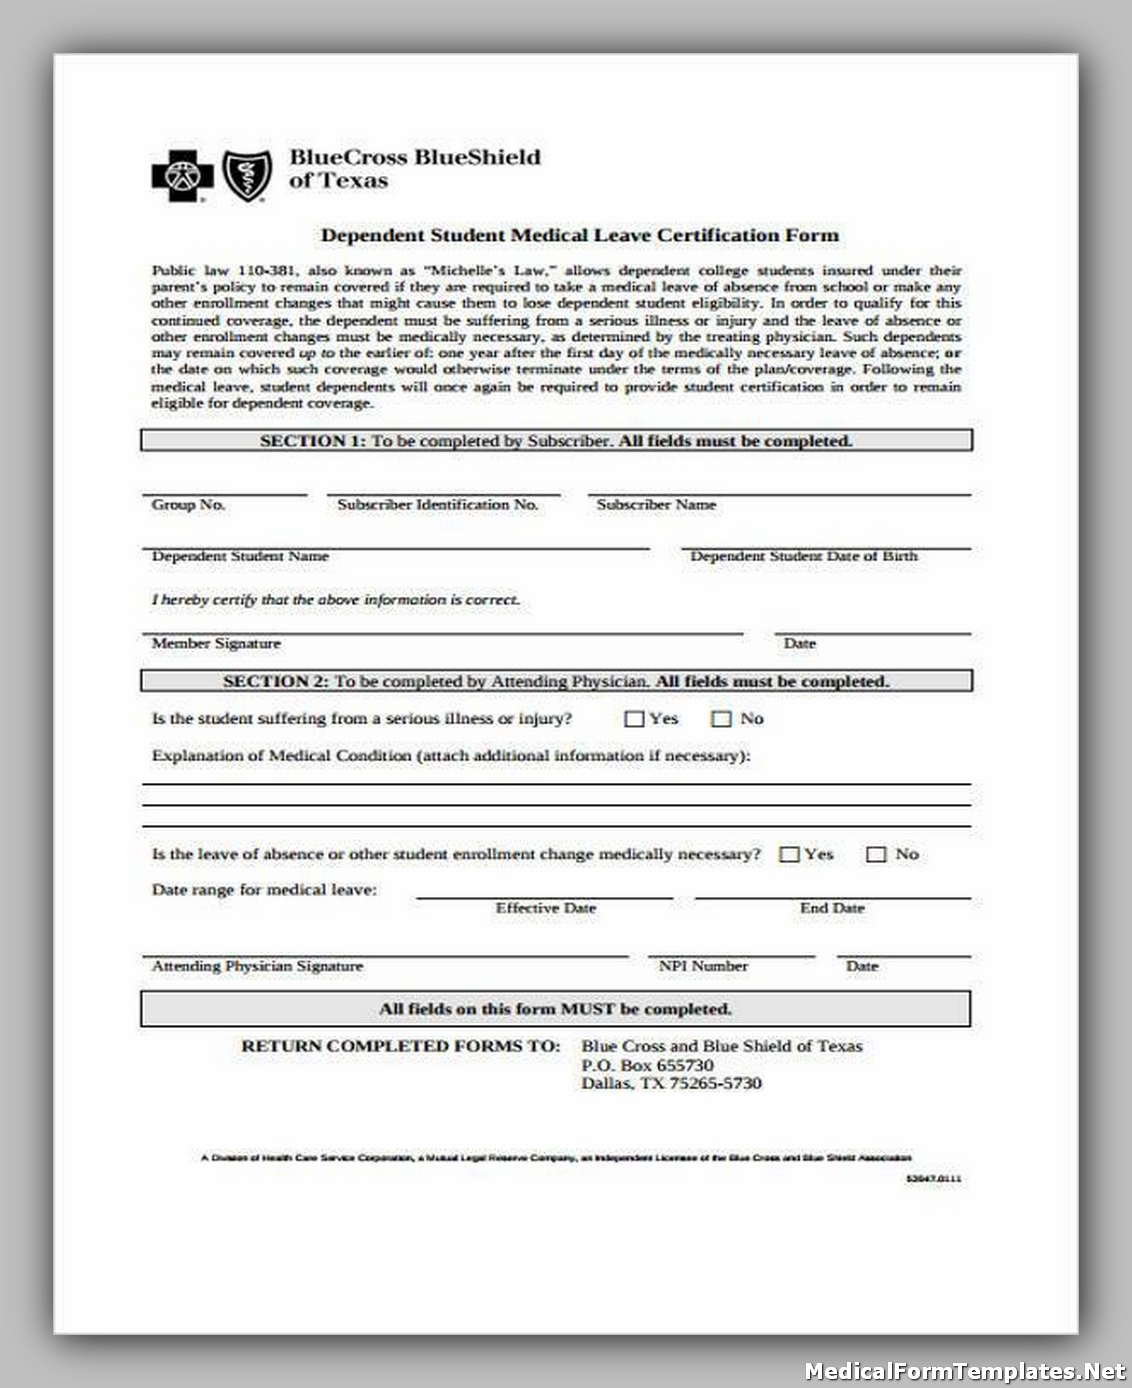 Medical Leave Certification Form